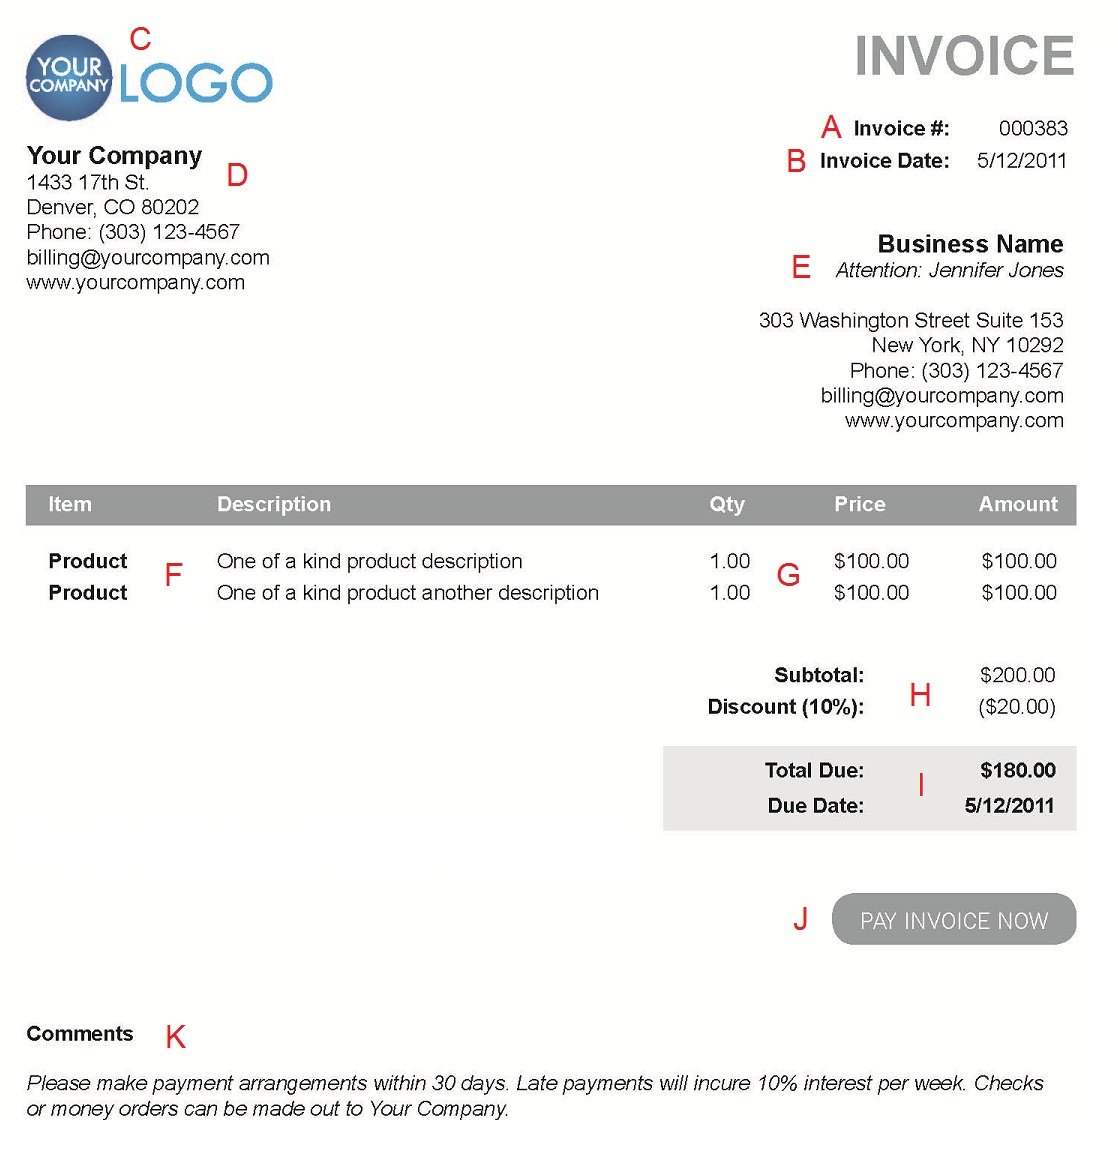 Coolmathgamesus  Inspiring The  Different Sections Of An Electronic Payment Invoice With Excellent A  With Appealing Bmw Invoice Also On The Invoice In Addition Kbb Invoice Price And Designer Invoice Template As Well As Business Invoice Factoring Additionally Fedex Commercial Invoice Pdf From Paysimplecom With Coolmathgamesus  Excellent The  Different Sections Of An Electronic Payment Invoice With Appealing A  And Inspiring Bmw Invoice Also On The Invoice In Addition Kbb Invoice Price From Paysimplecom